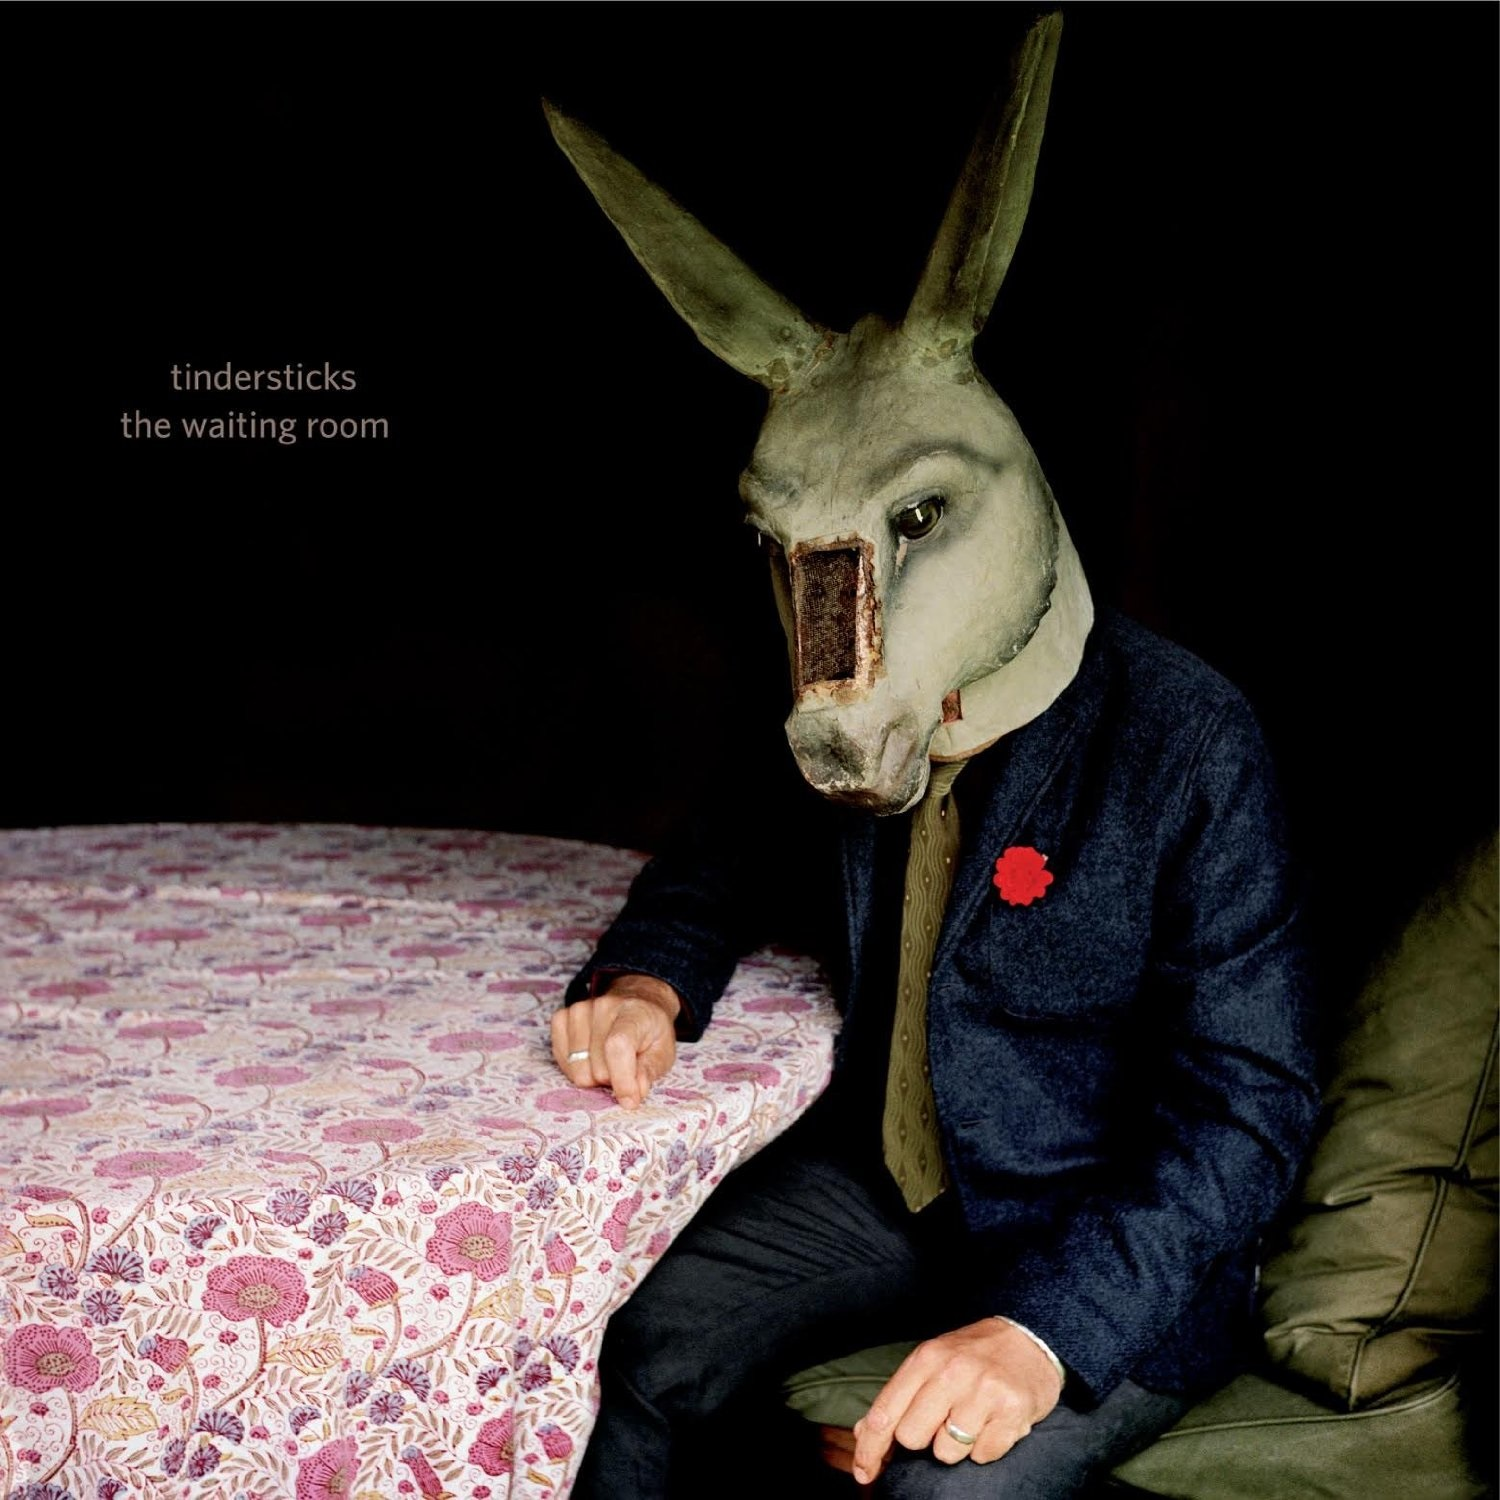 Tindersticks - The Waiting Room [Limited Deluxe...